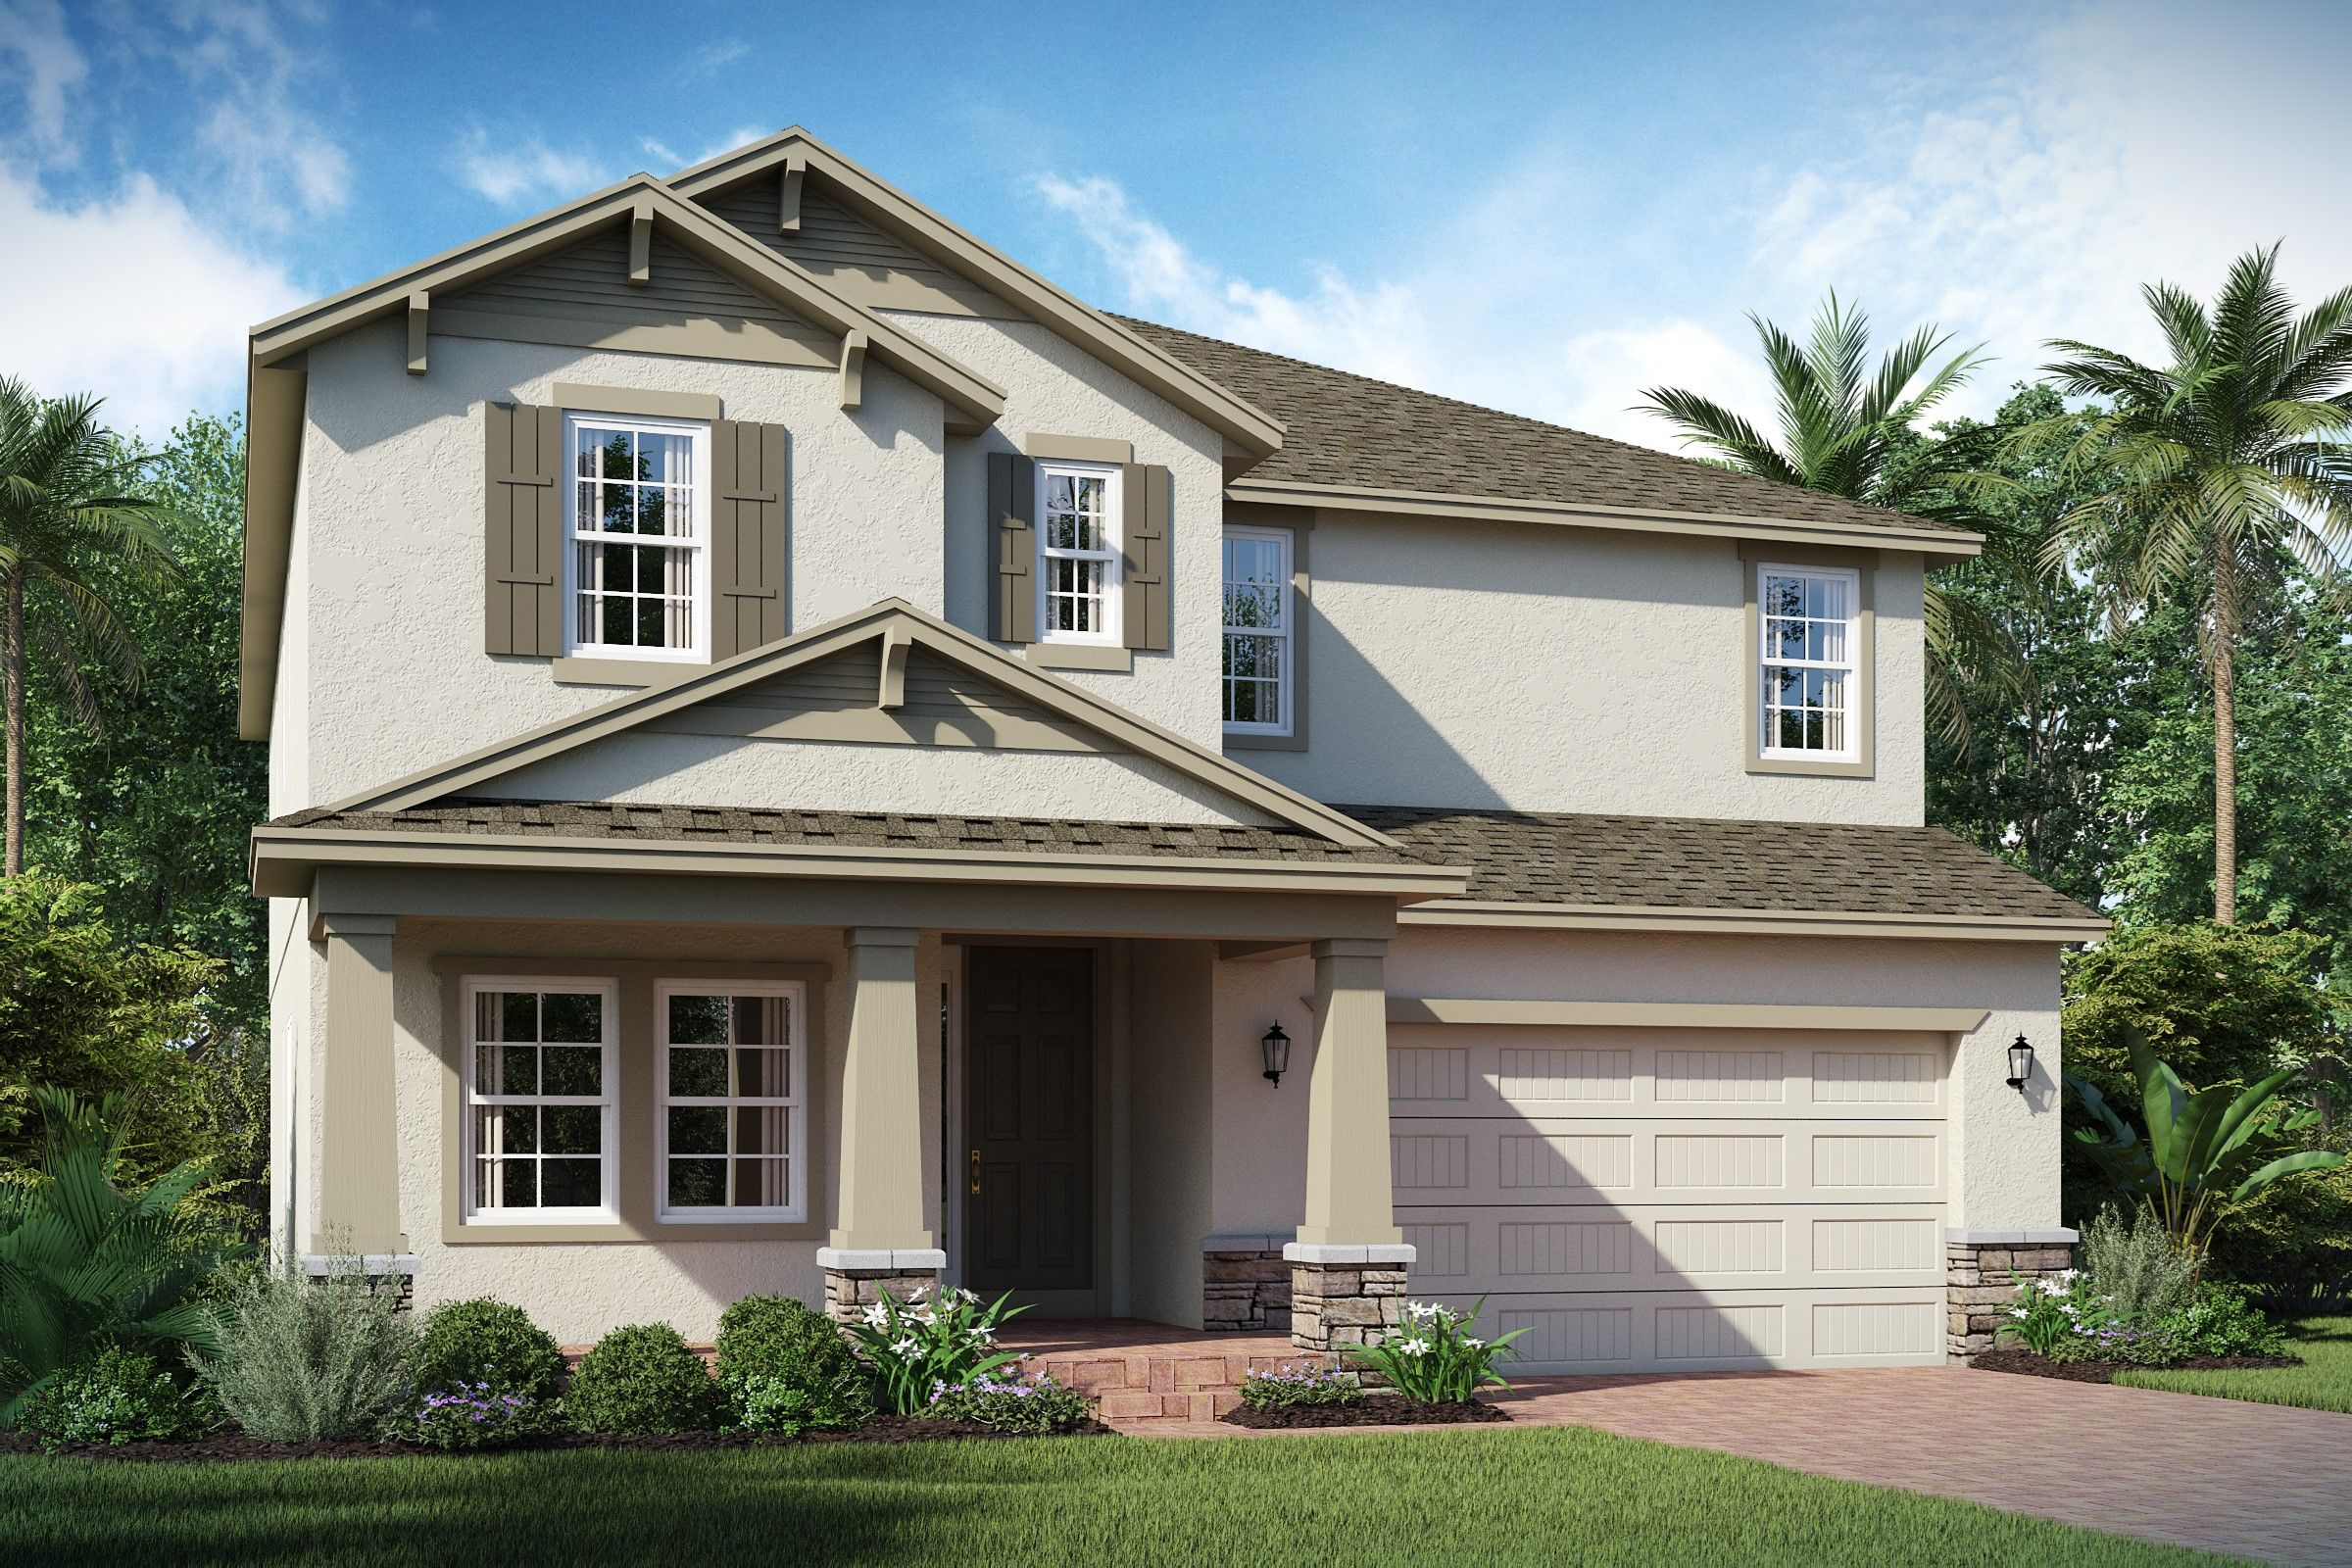 Kb Home Design Studio Orlando Fl   New Homes For Sale In Saint Cloud Fl  Newhomesource